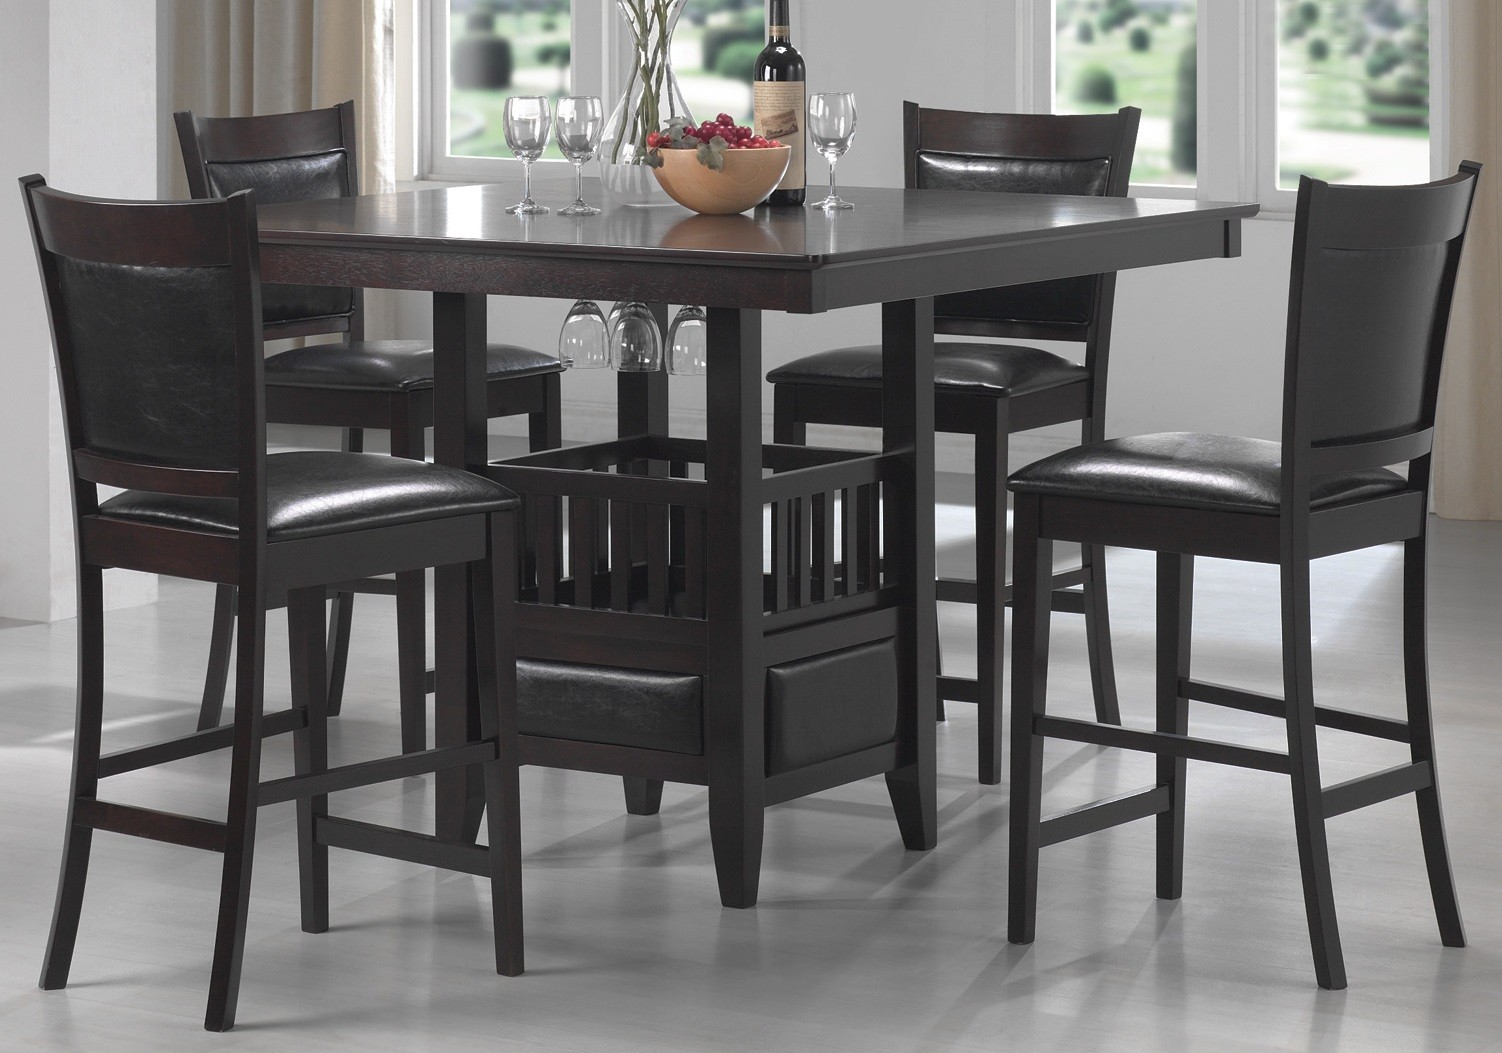 Counter Height Dining Room Chairs Jaden Counter Height Dining Room Set From Coaster